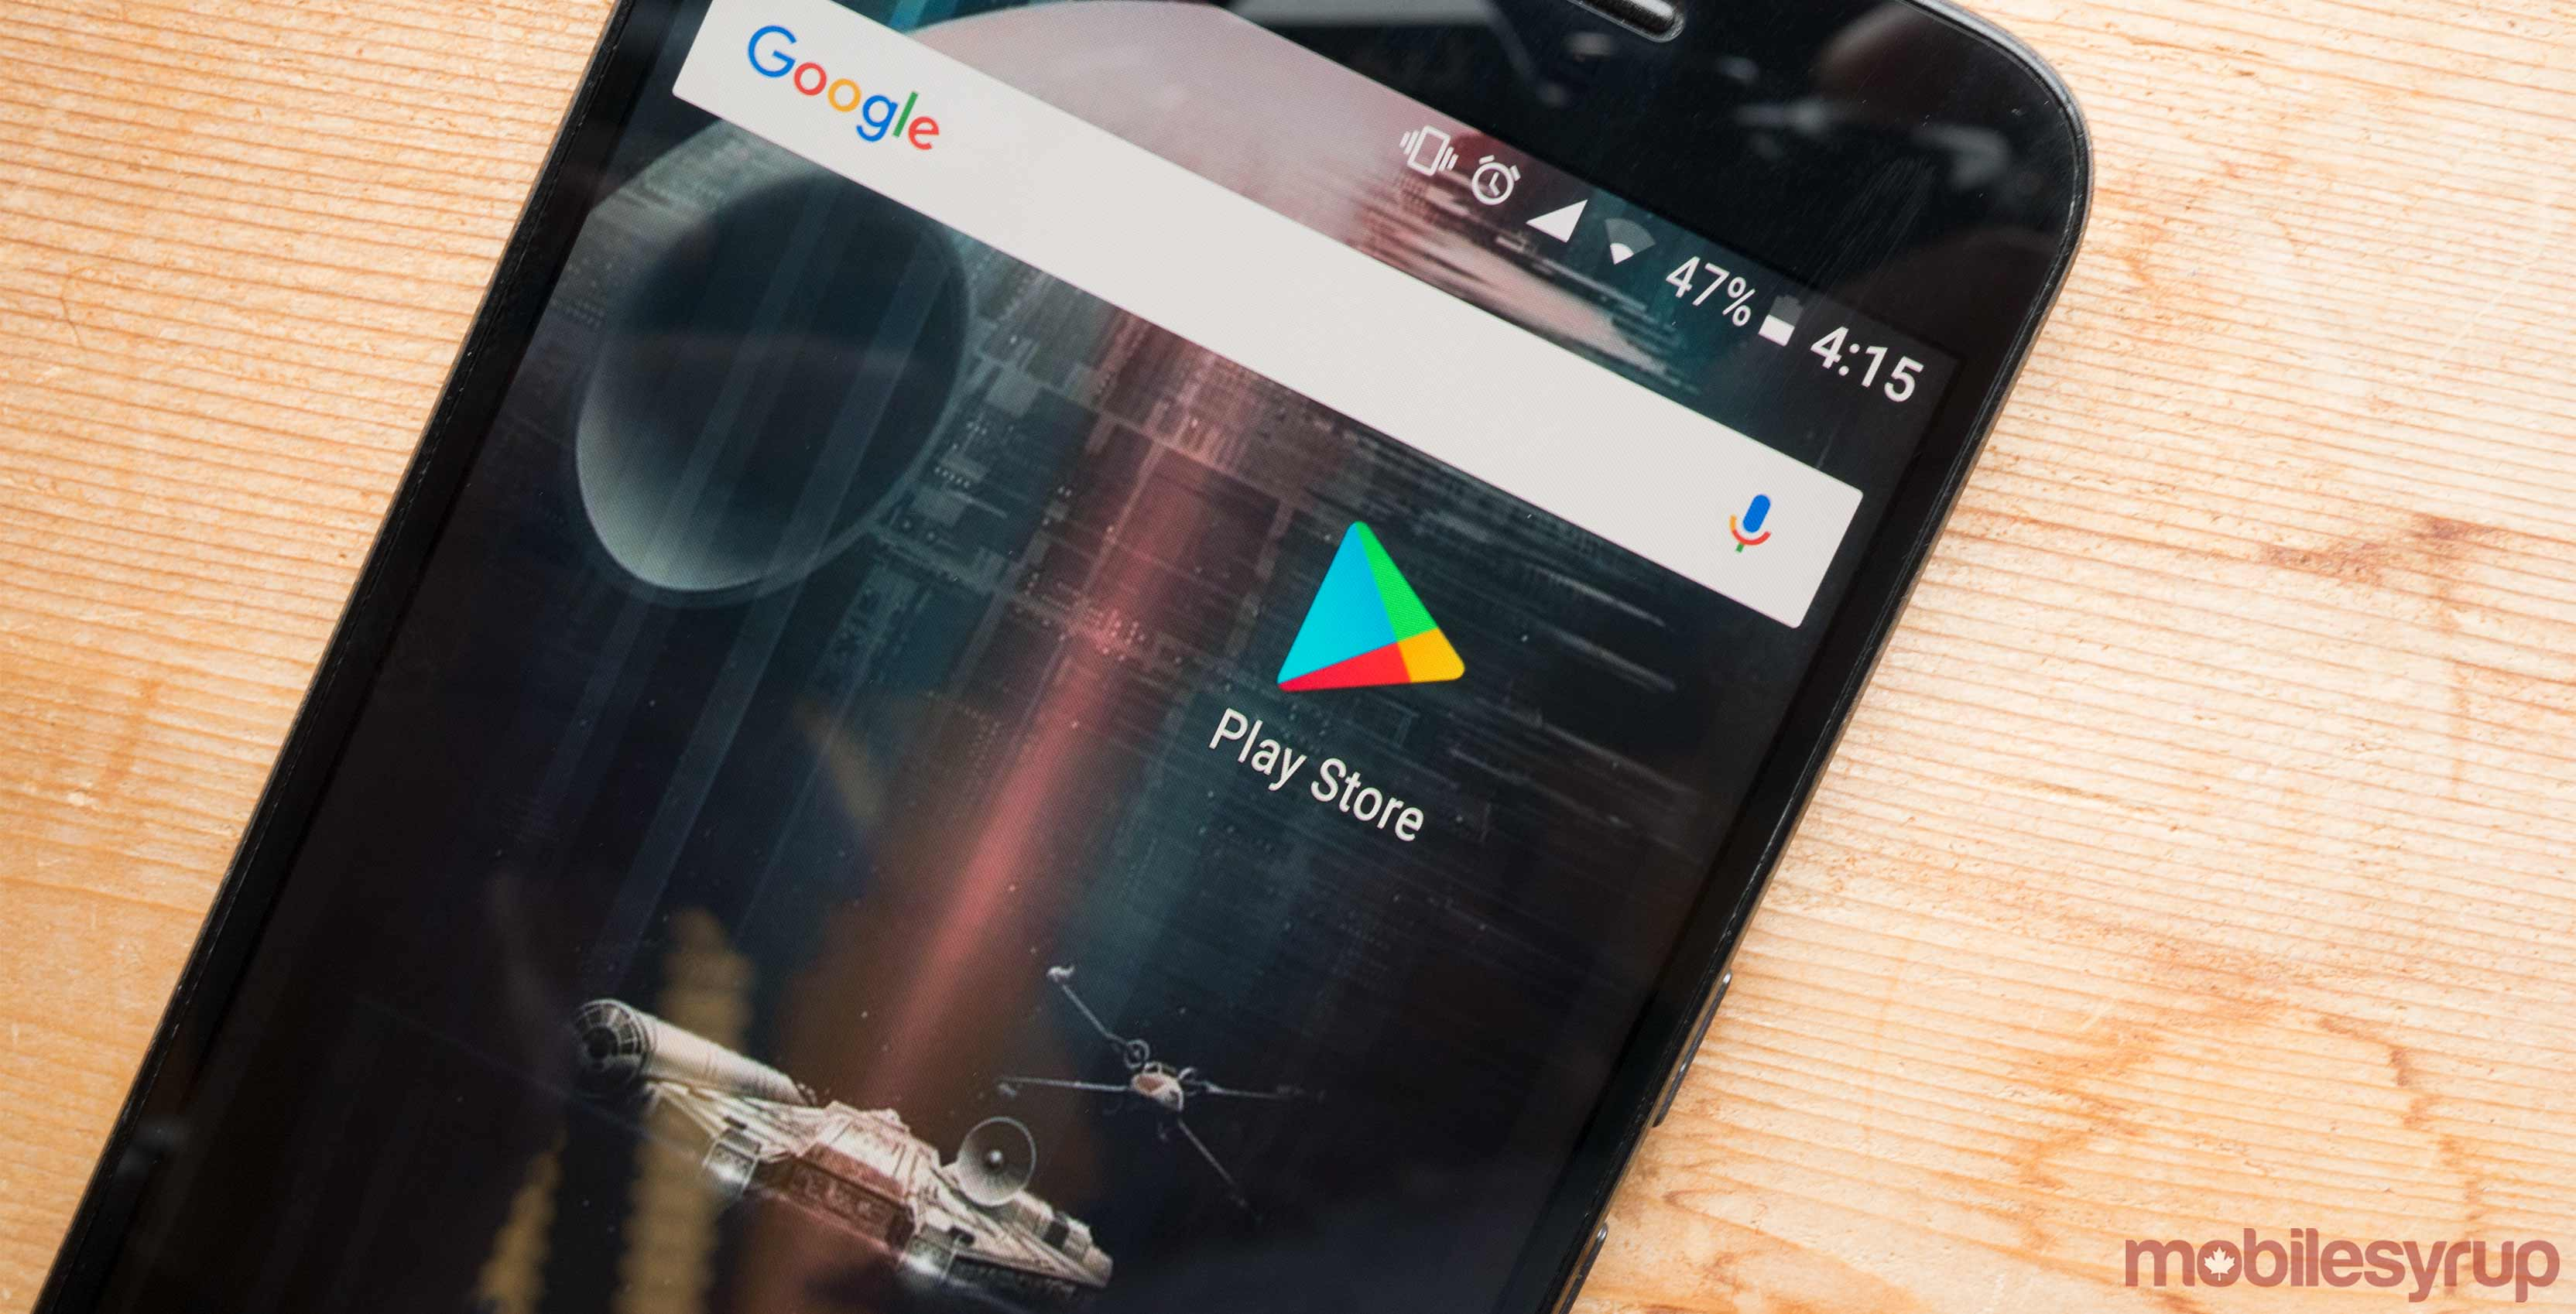 An image showcasing the Google Play Store app icon